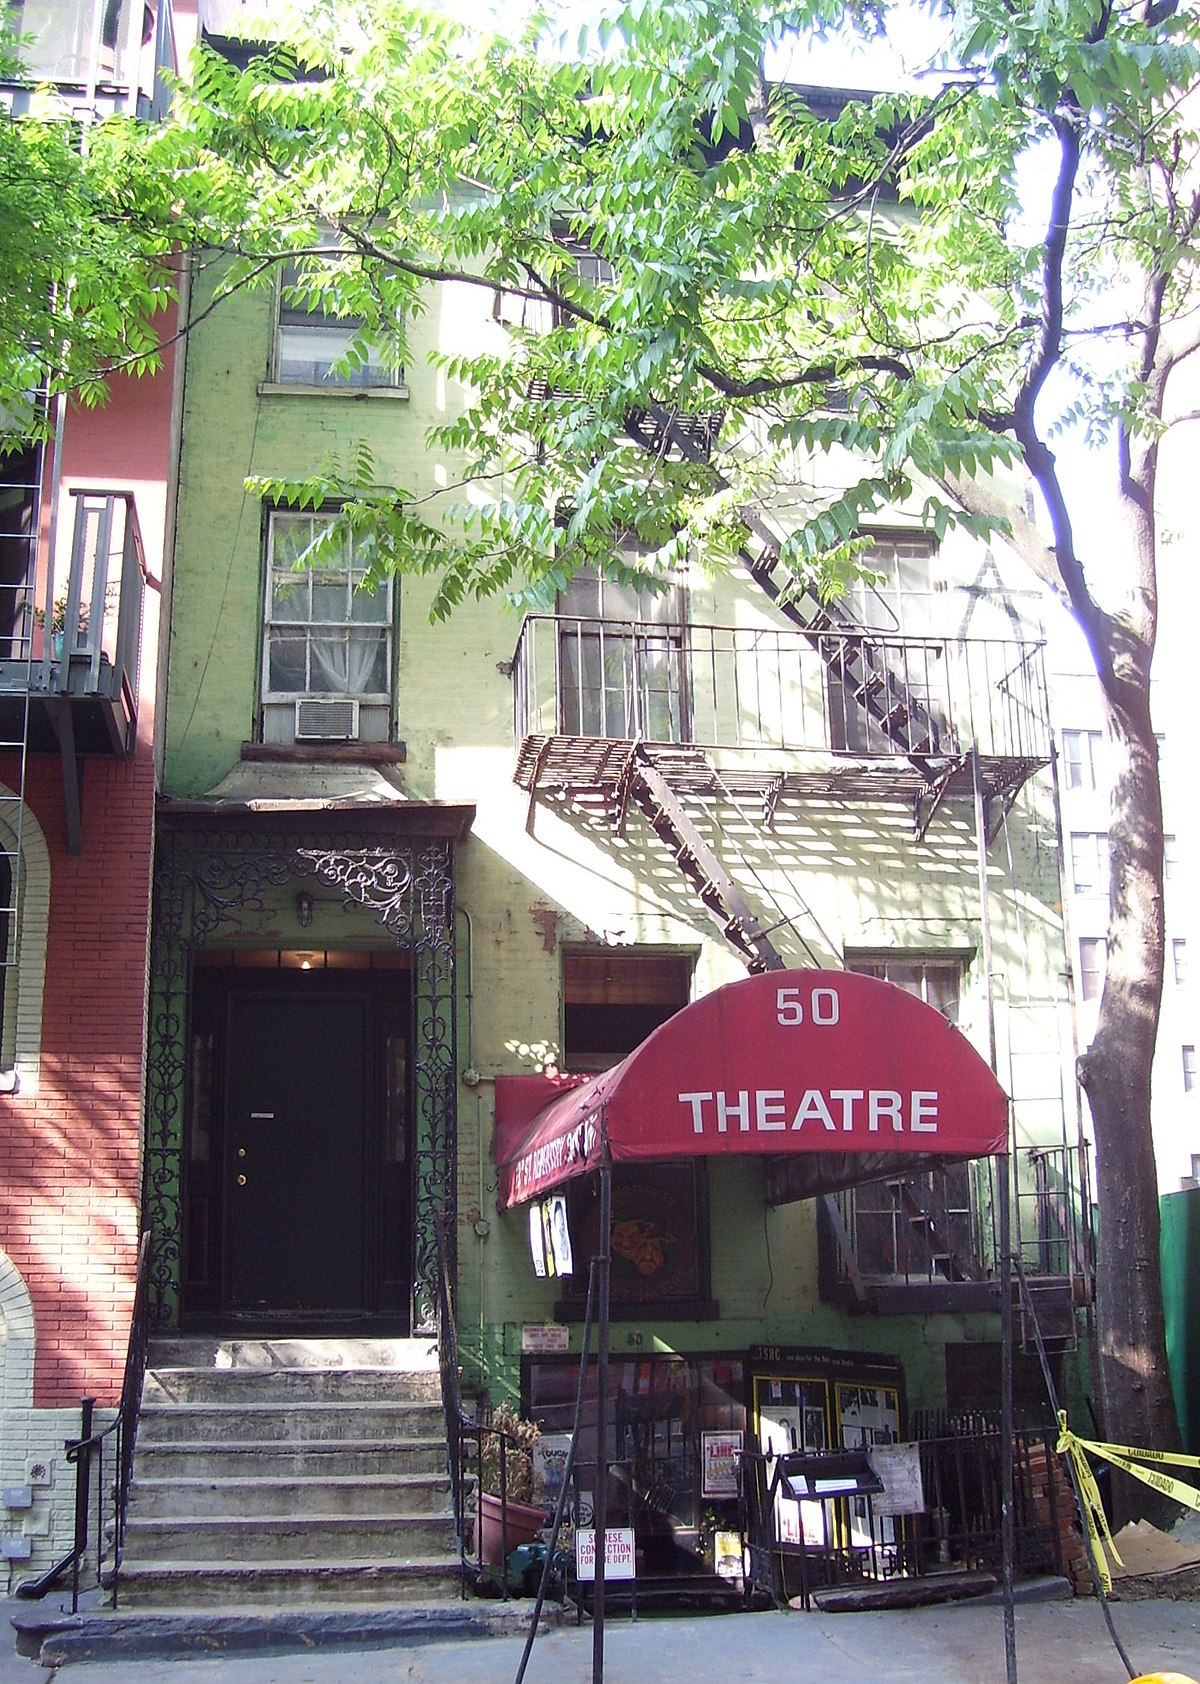 13th Street Repertory Theatre - Wikipedia